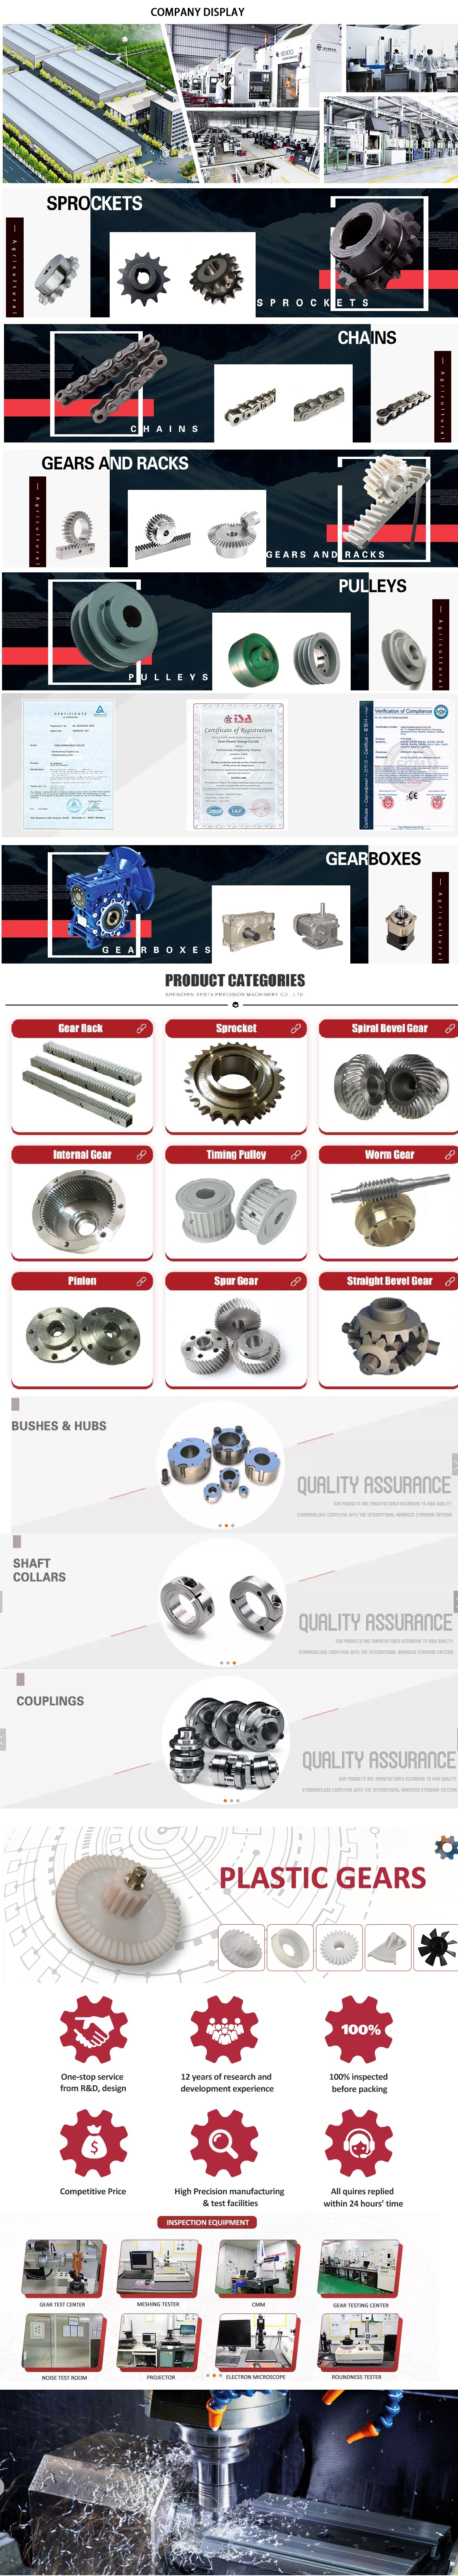 Best  made in China - replacement parts - agricultural gearbox manufacturer in China 500t   pto step up gearbox   Tunis Tunisia   Pressure Injection Die Casting Machine for Aluminium Alloy with ce certificate top quality low price suitable for Tractor, Agricultural machines, right angle pto shaft drive